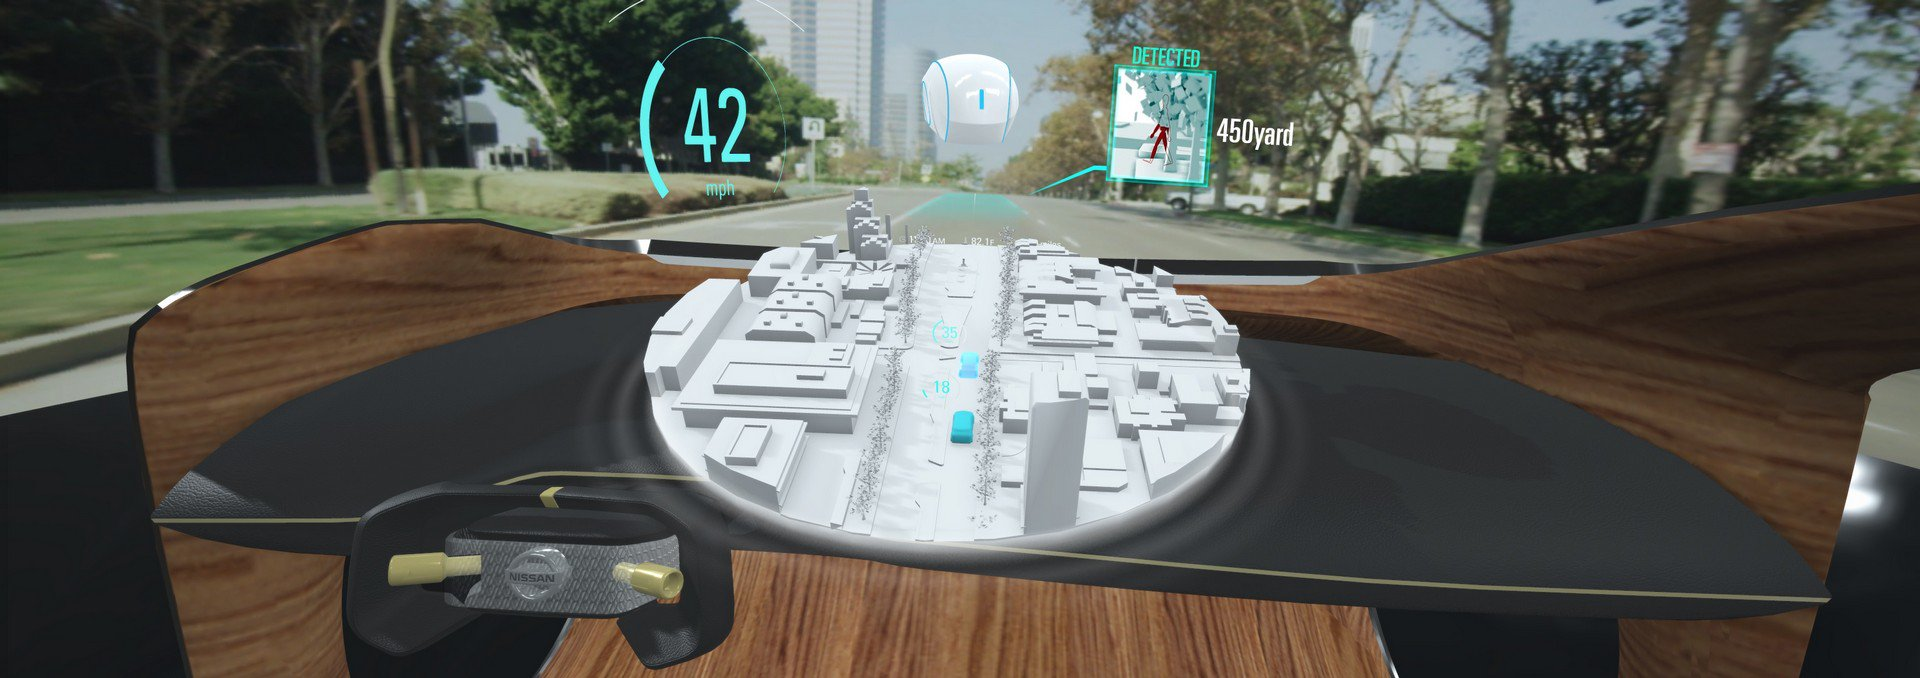 Nissan Invisible-to-Visible technology concept (3)